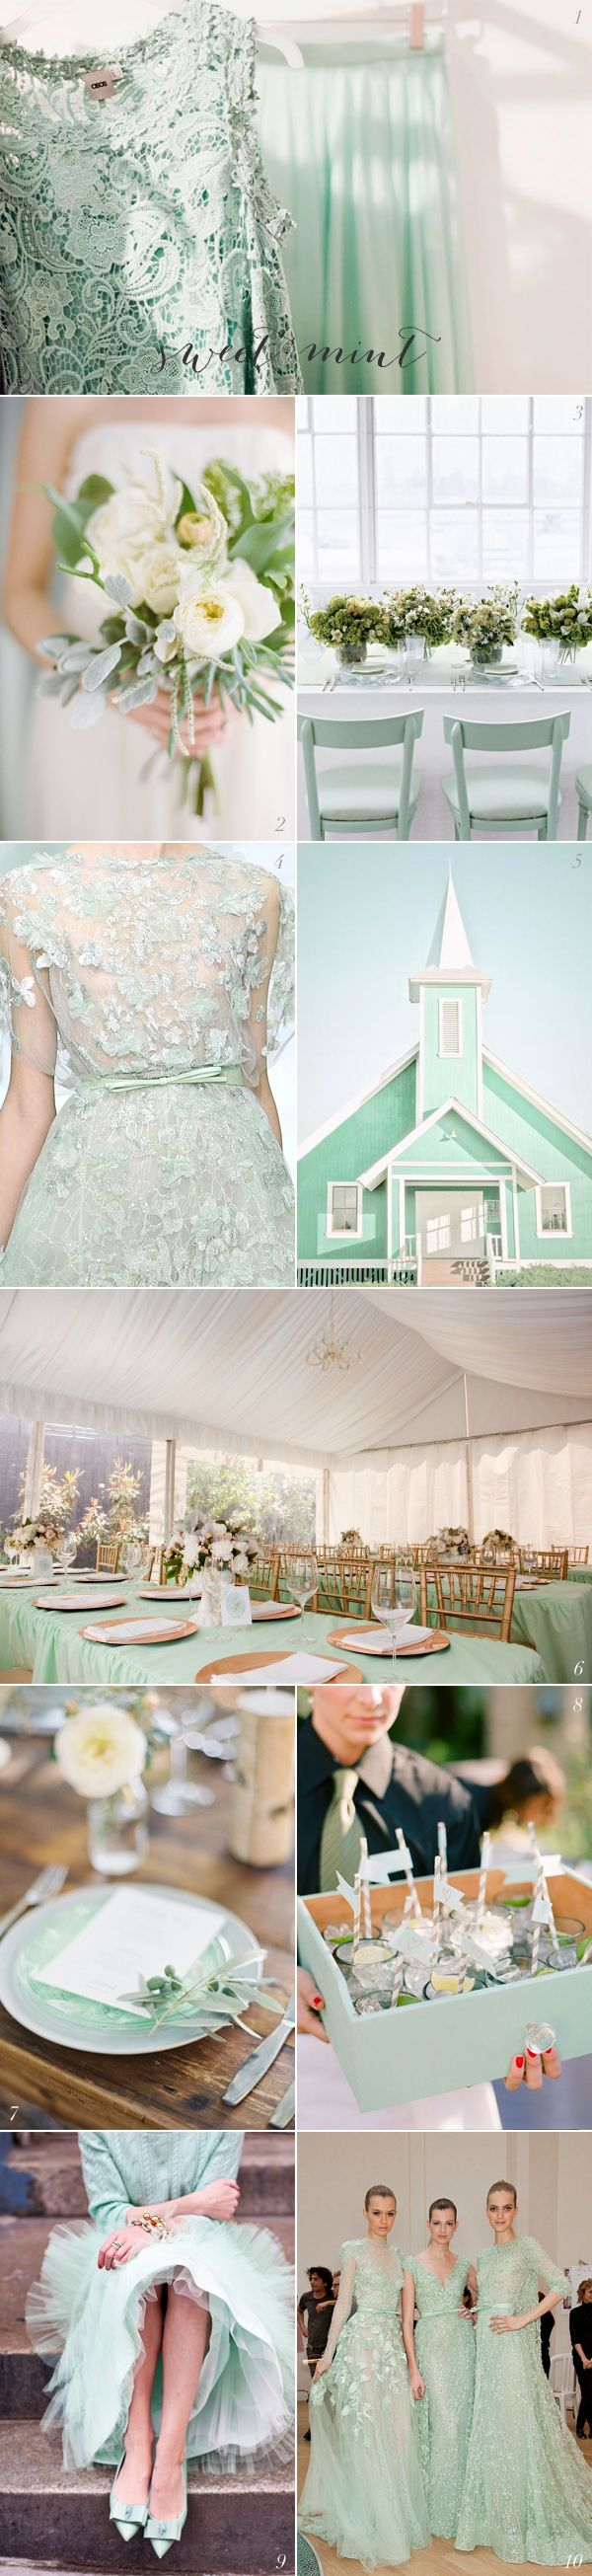 Mint wedding chapel & reception ideas #Mint / pastel green Wedding Reception ... Wedding ideas for brides, grooms, parents & planners ... https://itunes.apple.com/us/app/the-gold-wedding-planner/id498112599?ls=1=8 … plus how to organise an entire wedding ♥ The Gold Wedding Planner iPhone App ♥Sweets Mint, Mint Green, Gold Weddings, Wedding Ideas, Receptions Ideas, Wedding Reception, Pastel Green, Mint Weddings, Green Weddings